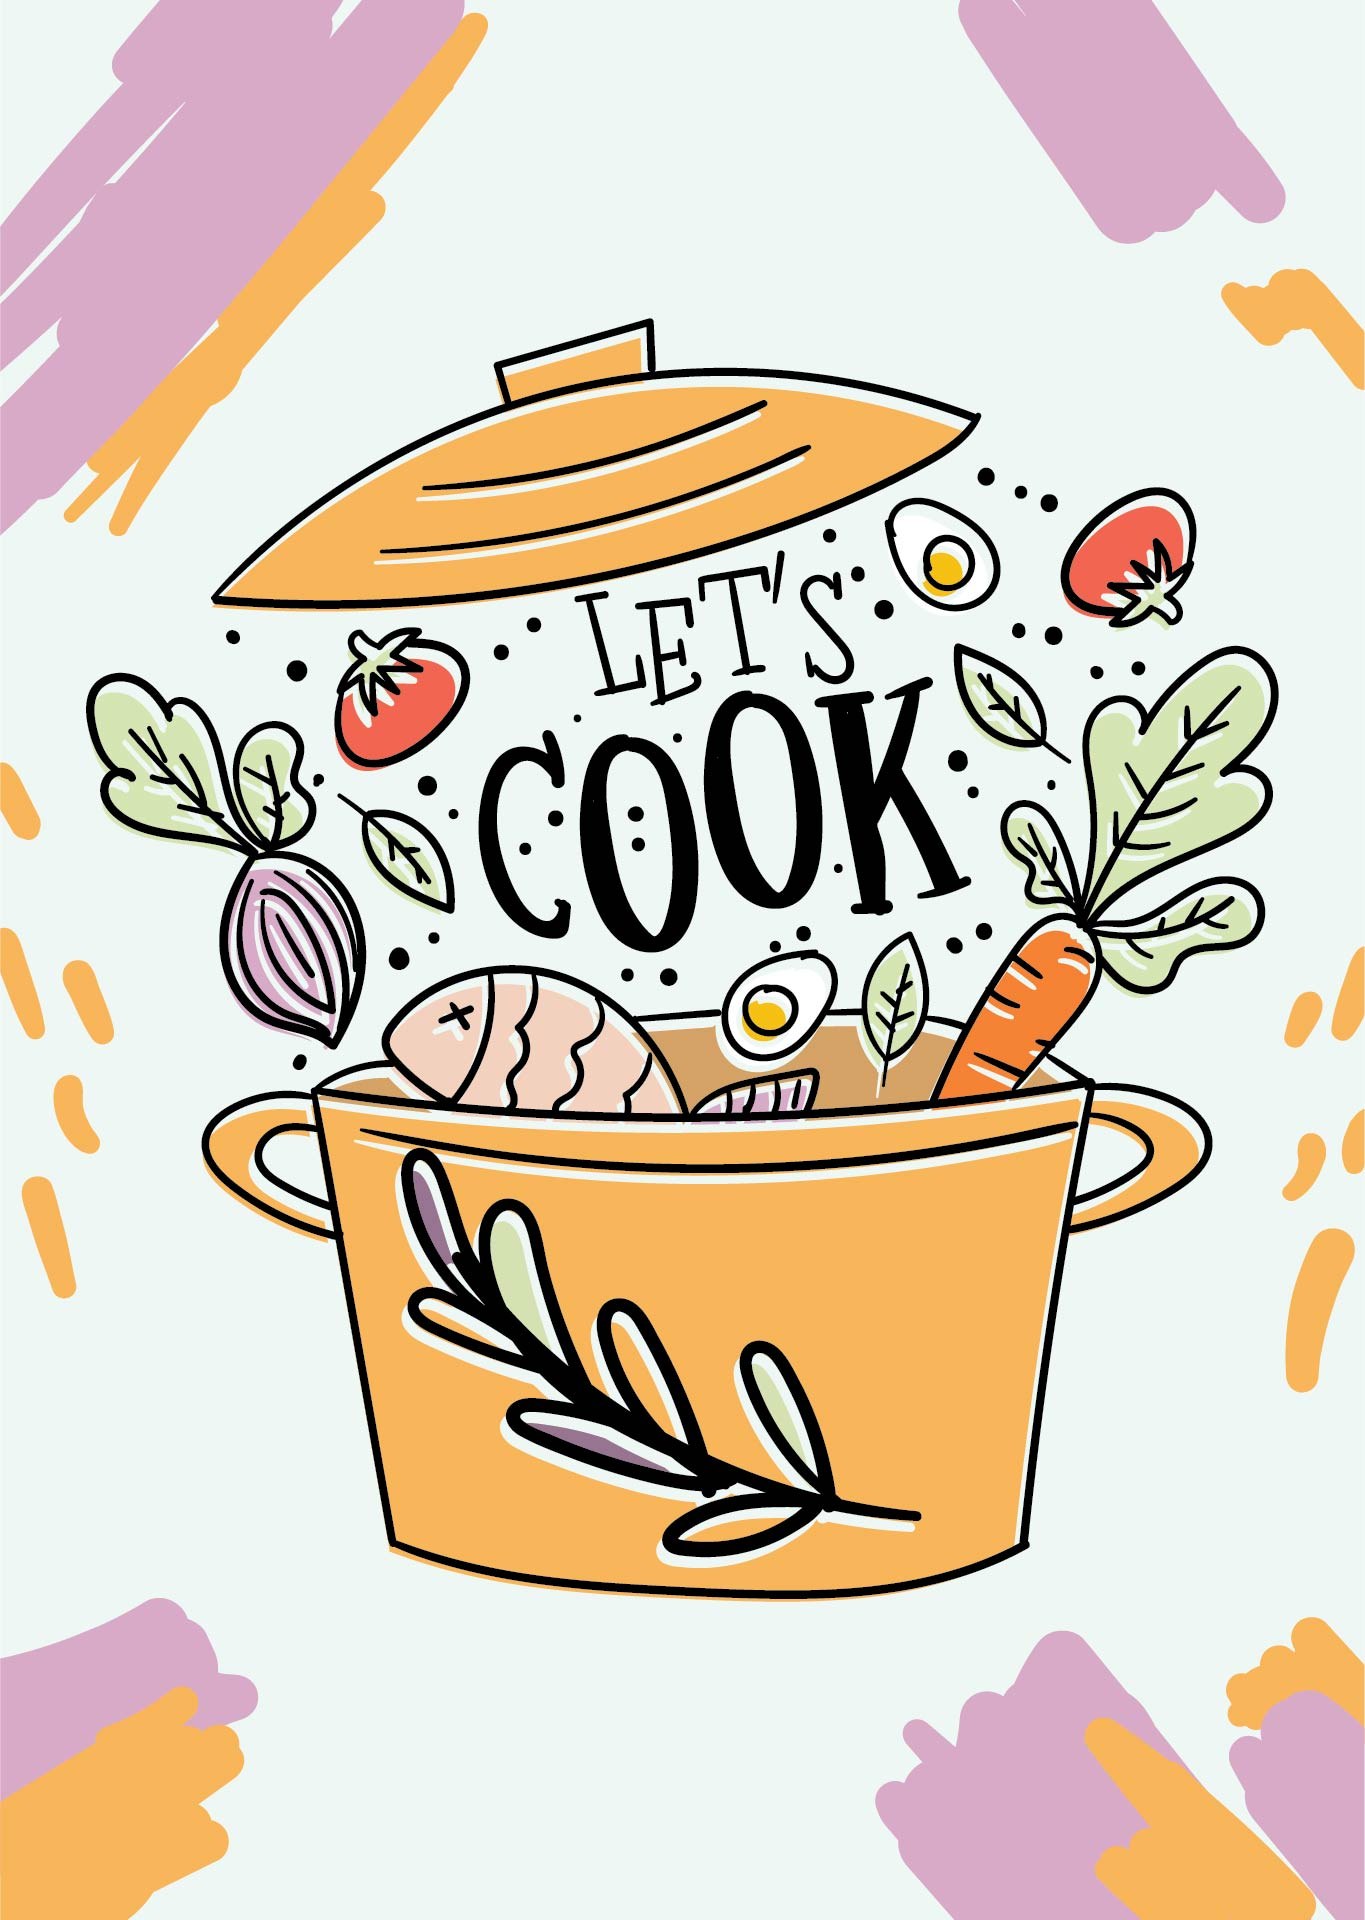 Printable Cookbook Cover Designs